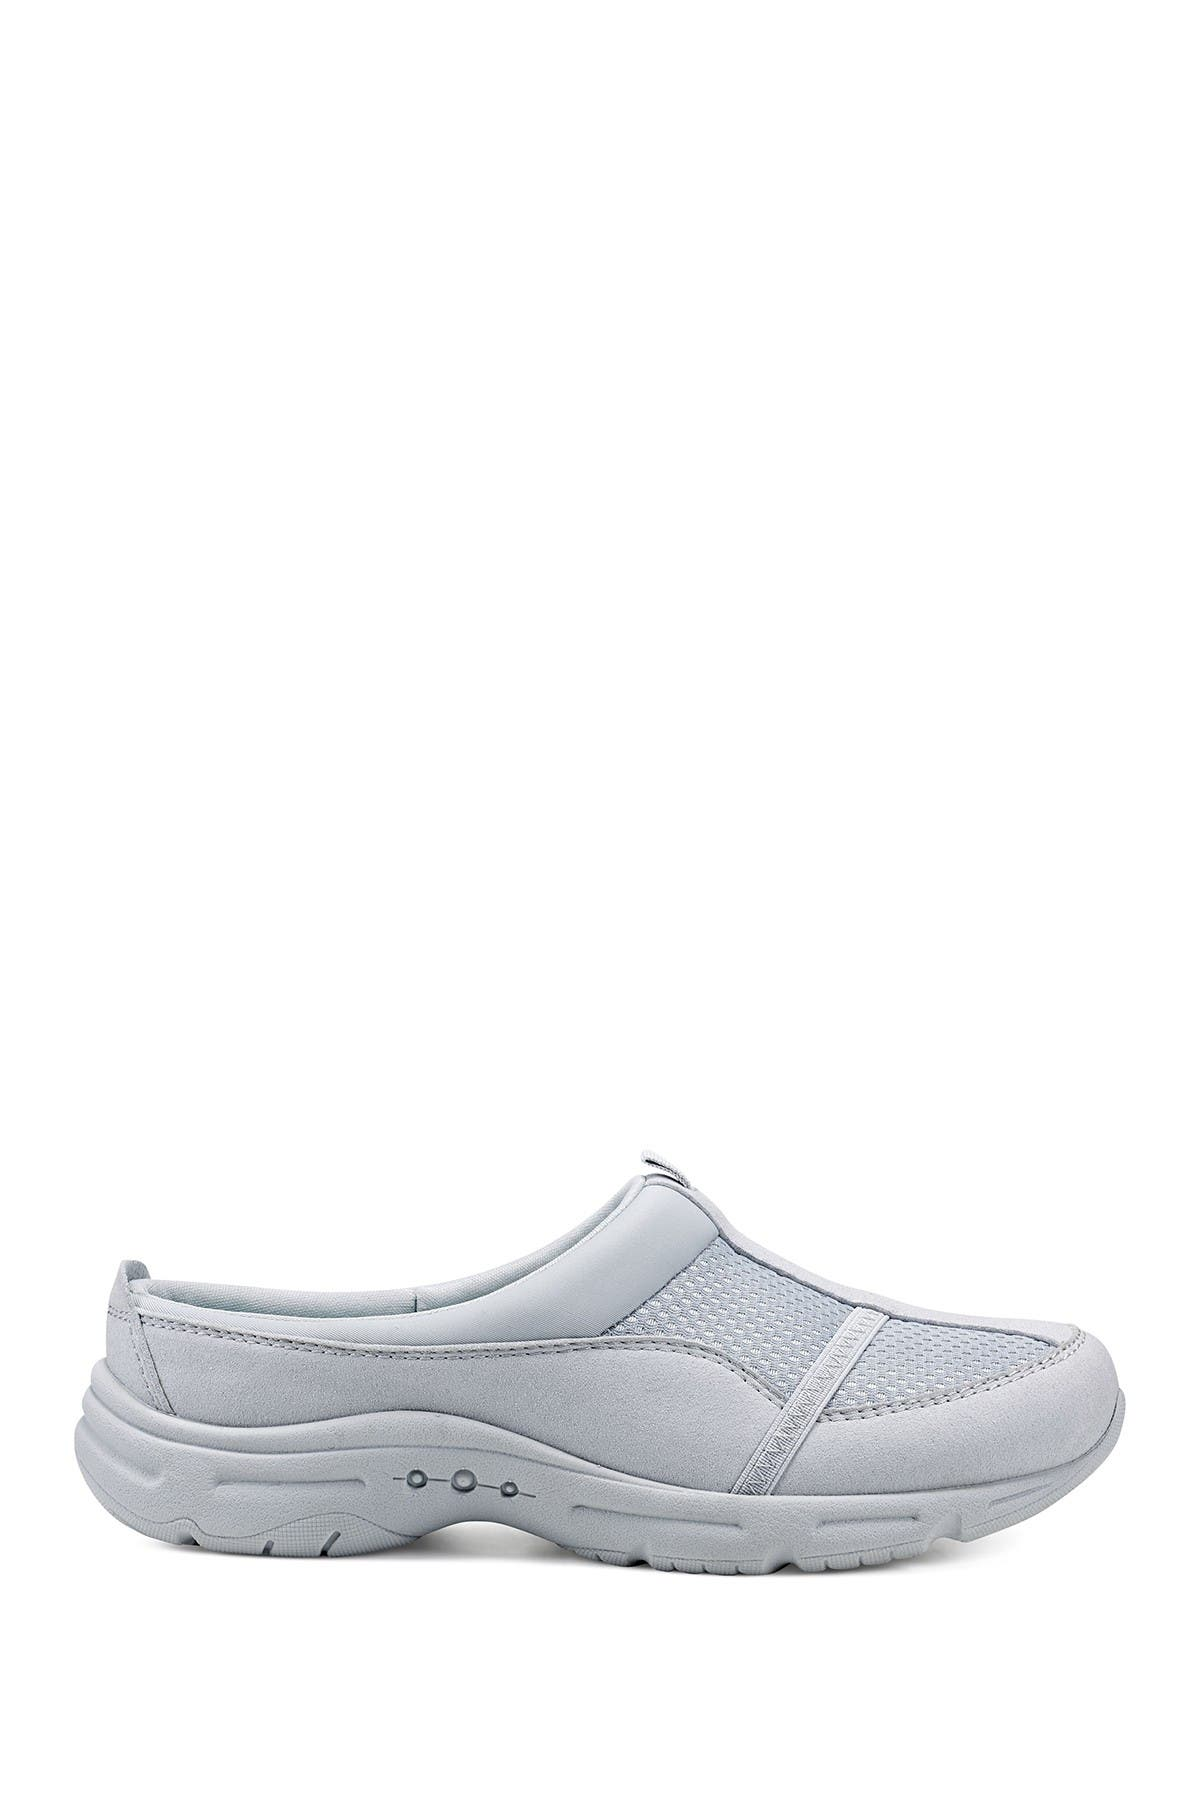 Image of Easy Spirit Bricen Slip-On Sneaker